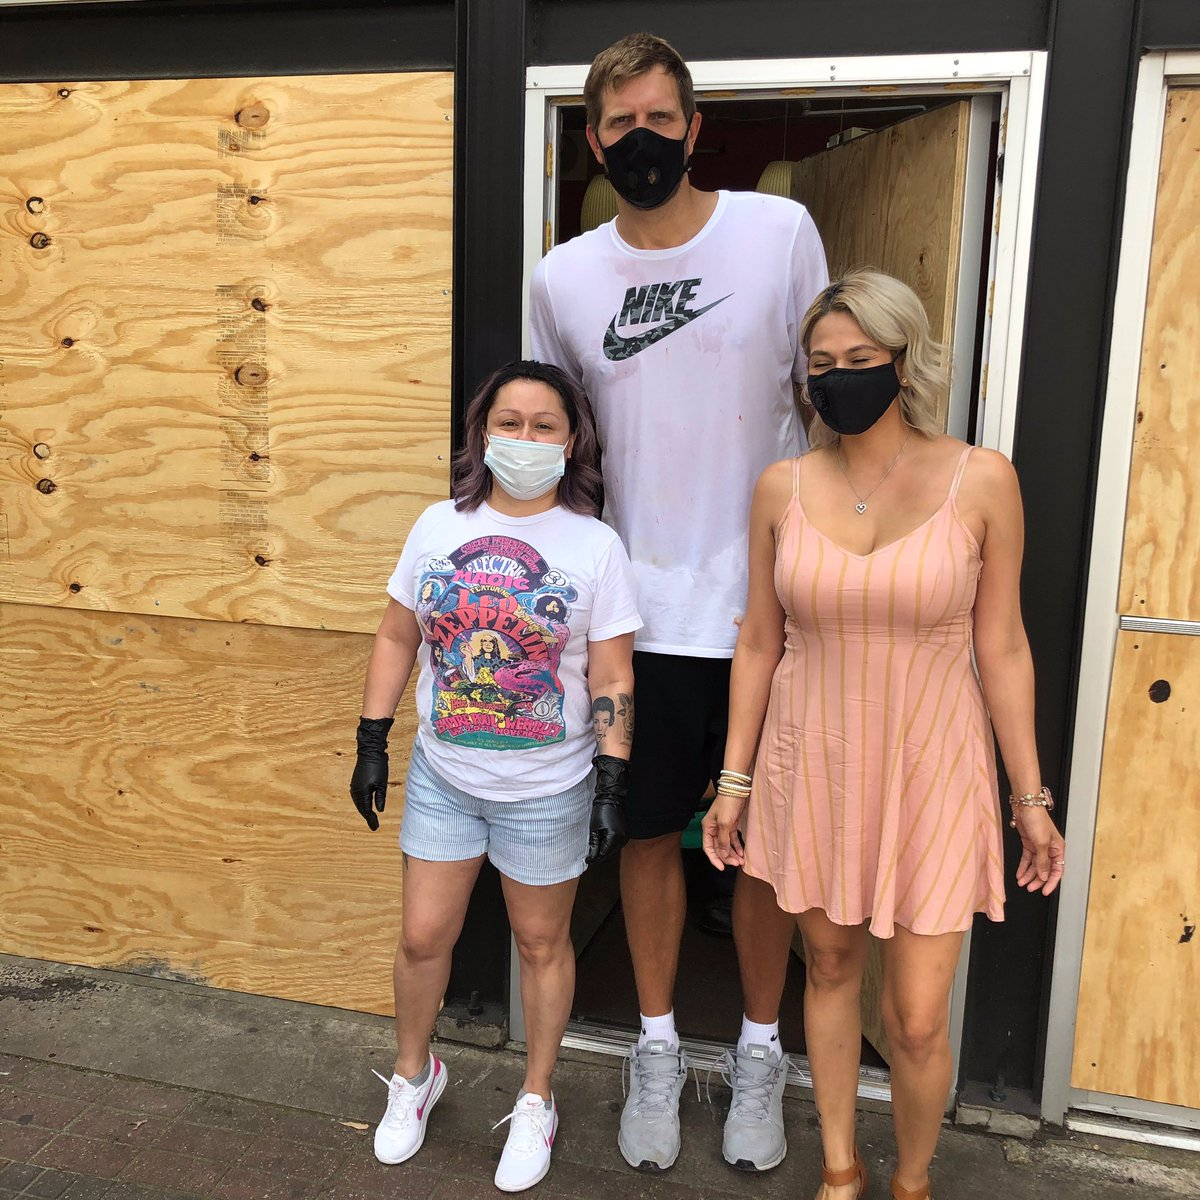 """Dirk helping out the community in Deep Ellum 💪🏻💙 Along side my cousin (left"""" and the beauty shop she works for. LETS GOOOO !! 🙏🏻🙏🏻 @swish41 https://t.co/jCTJPiDCBm"""